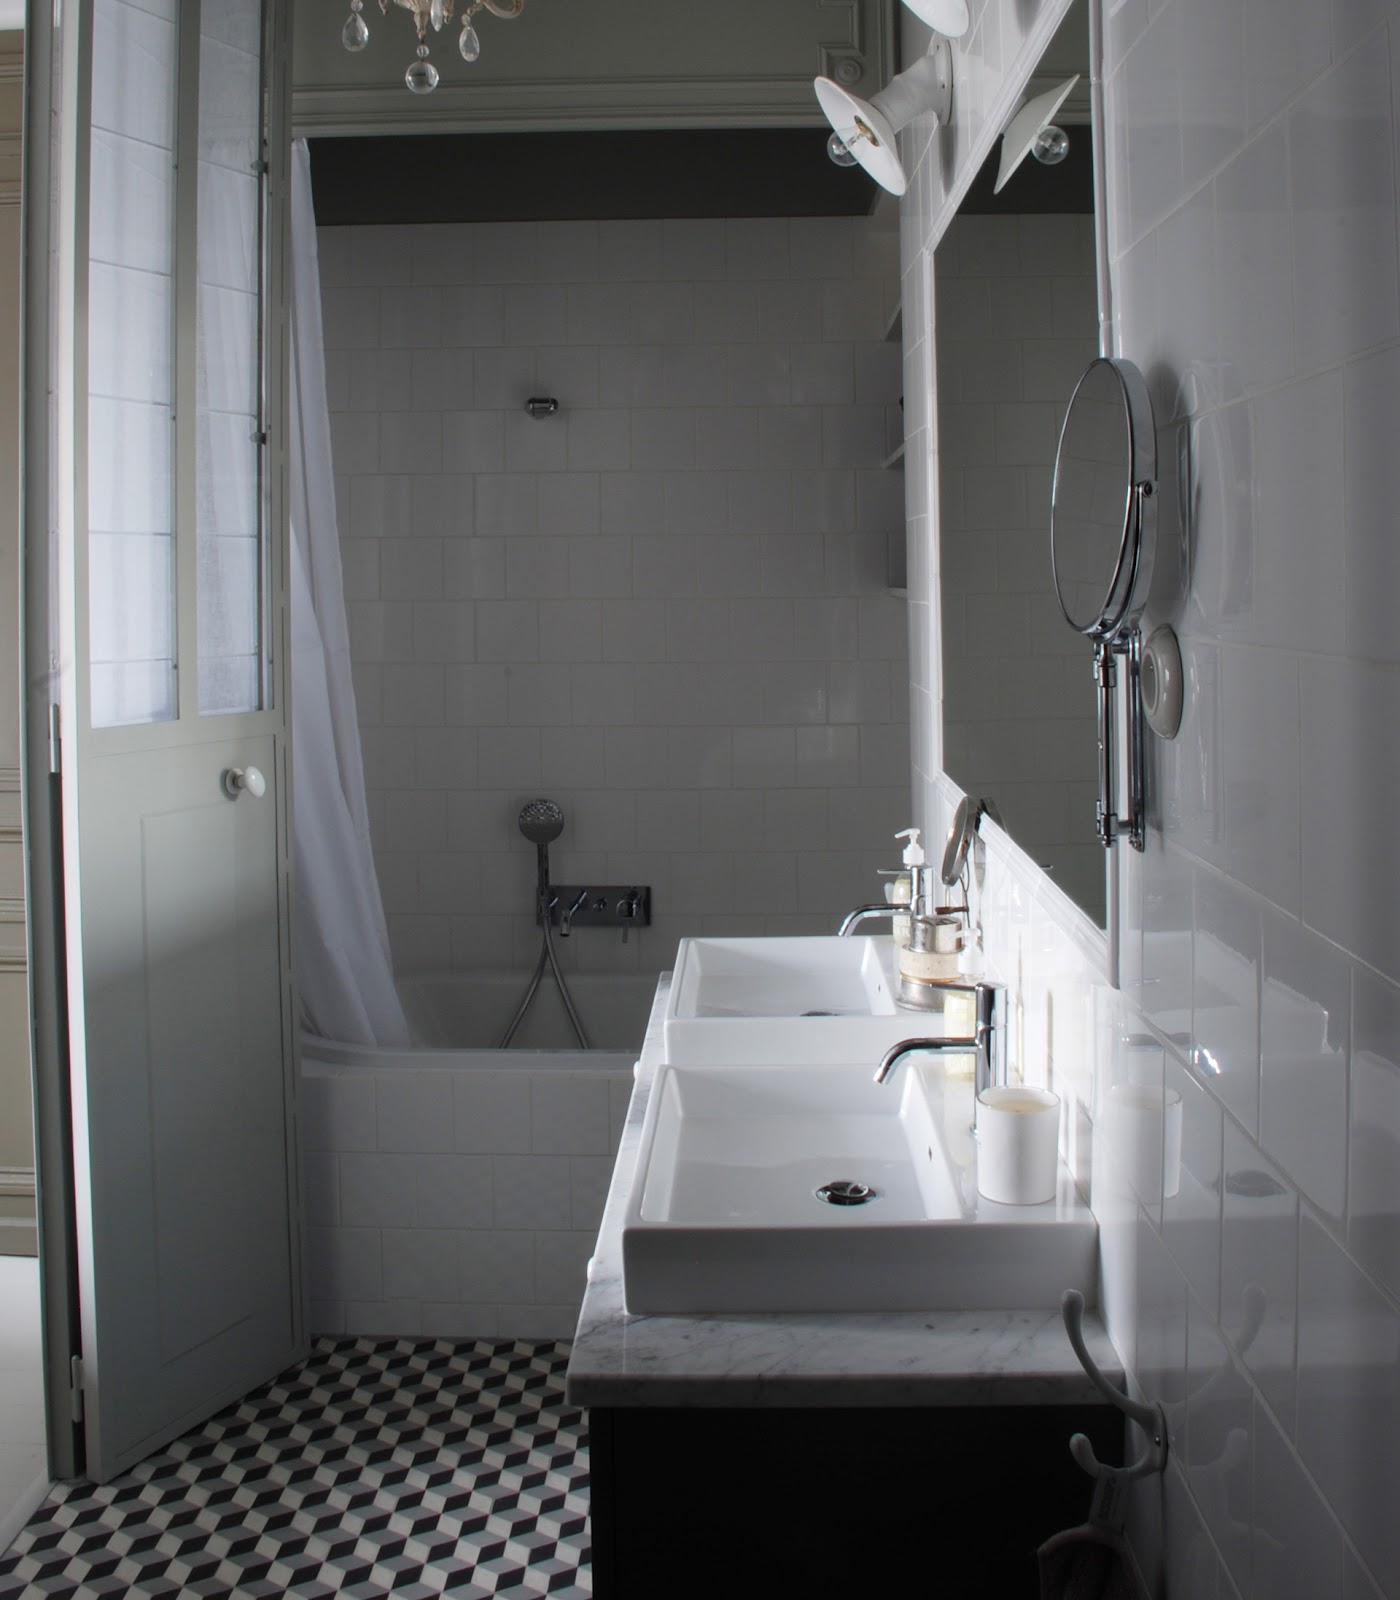 Marianne evennou mars 2012 for Salle de bain carreaux